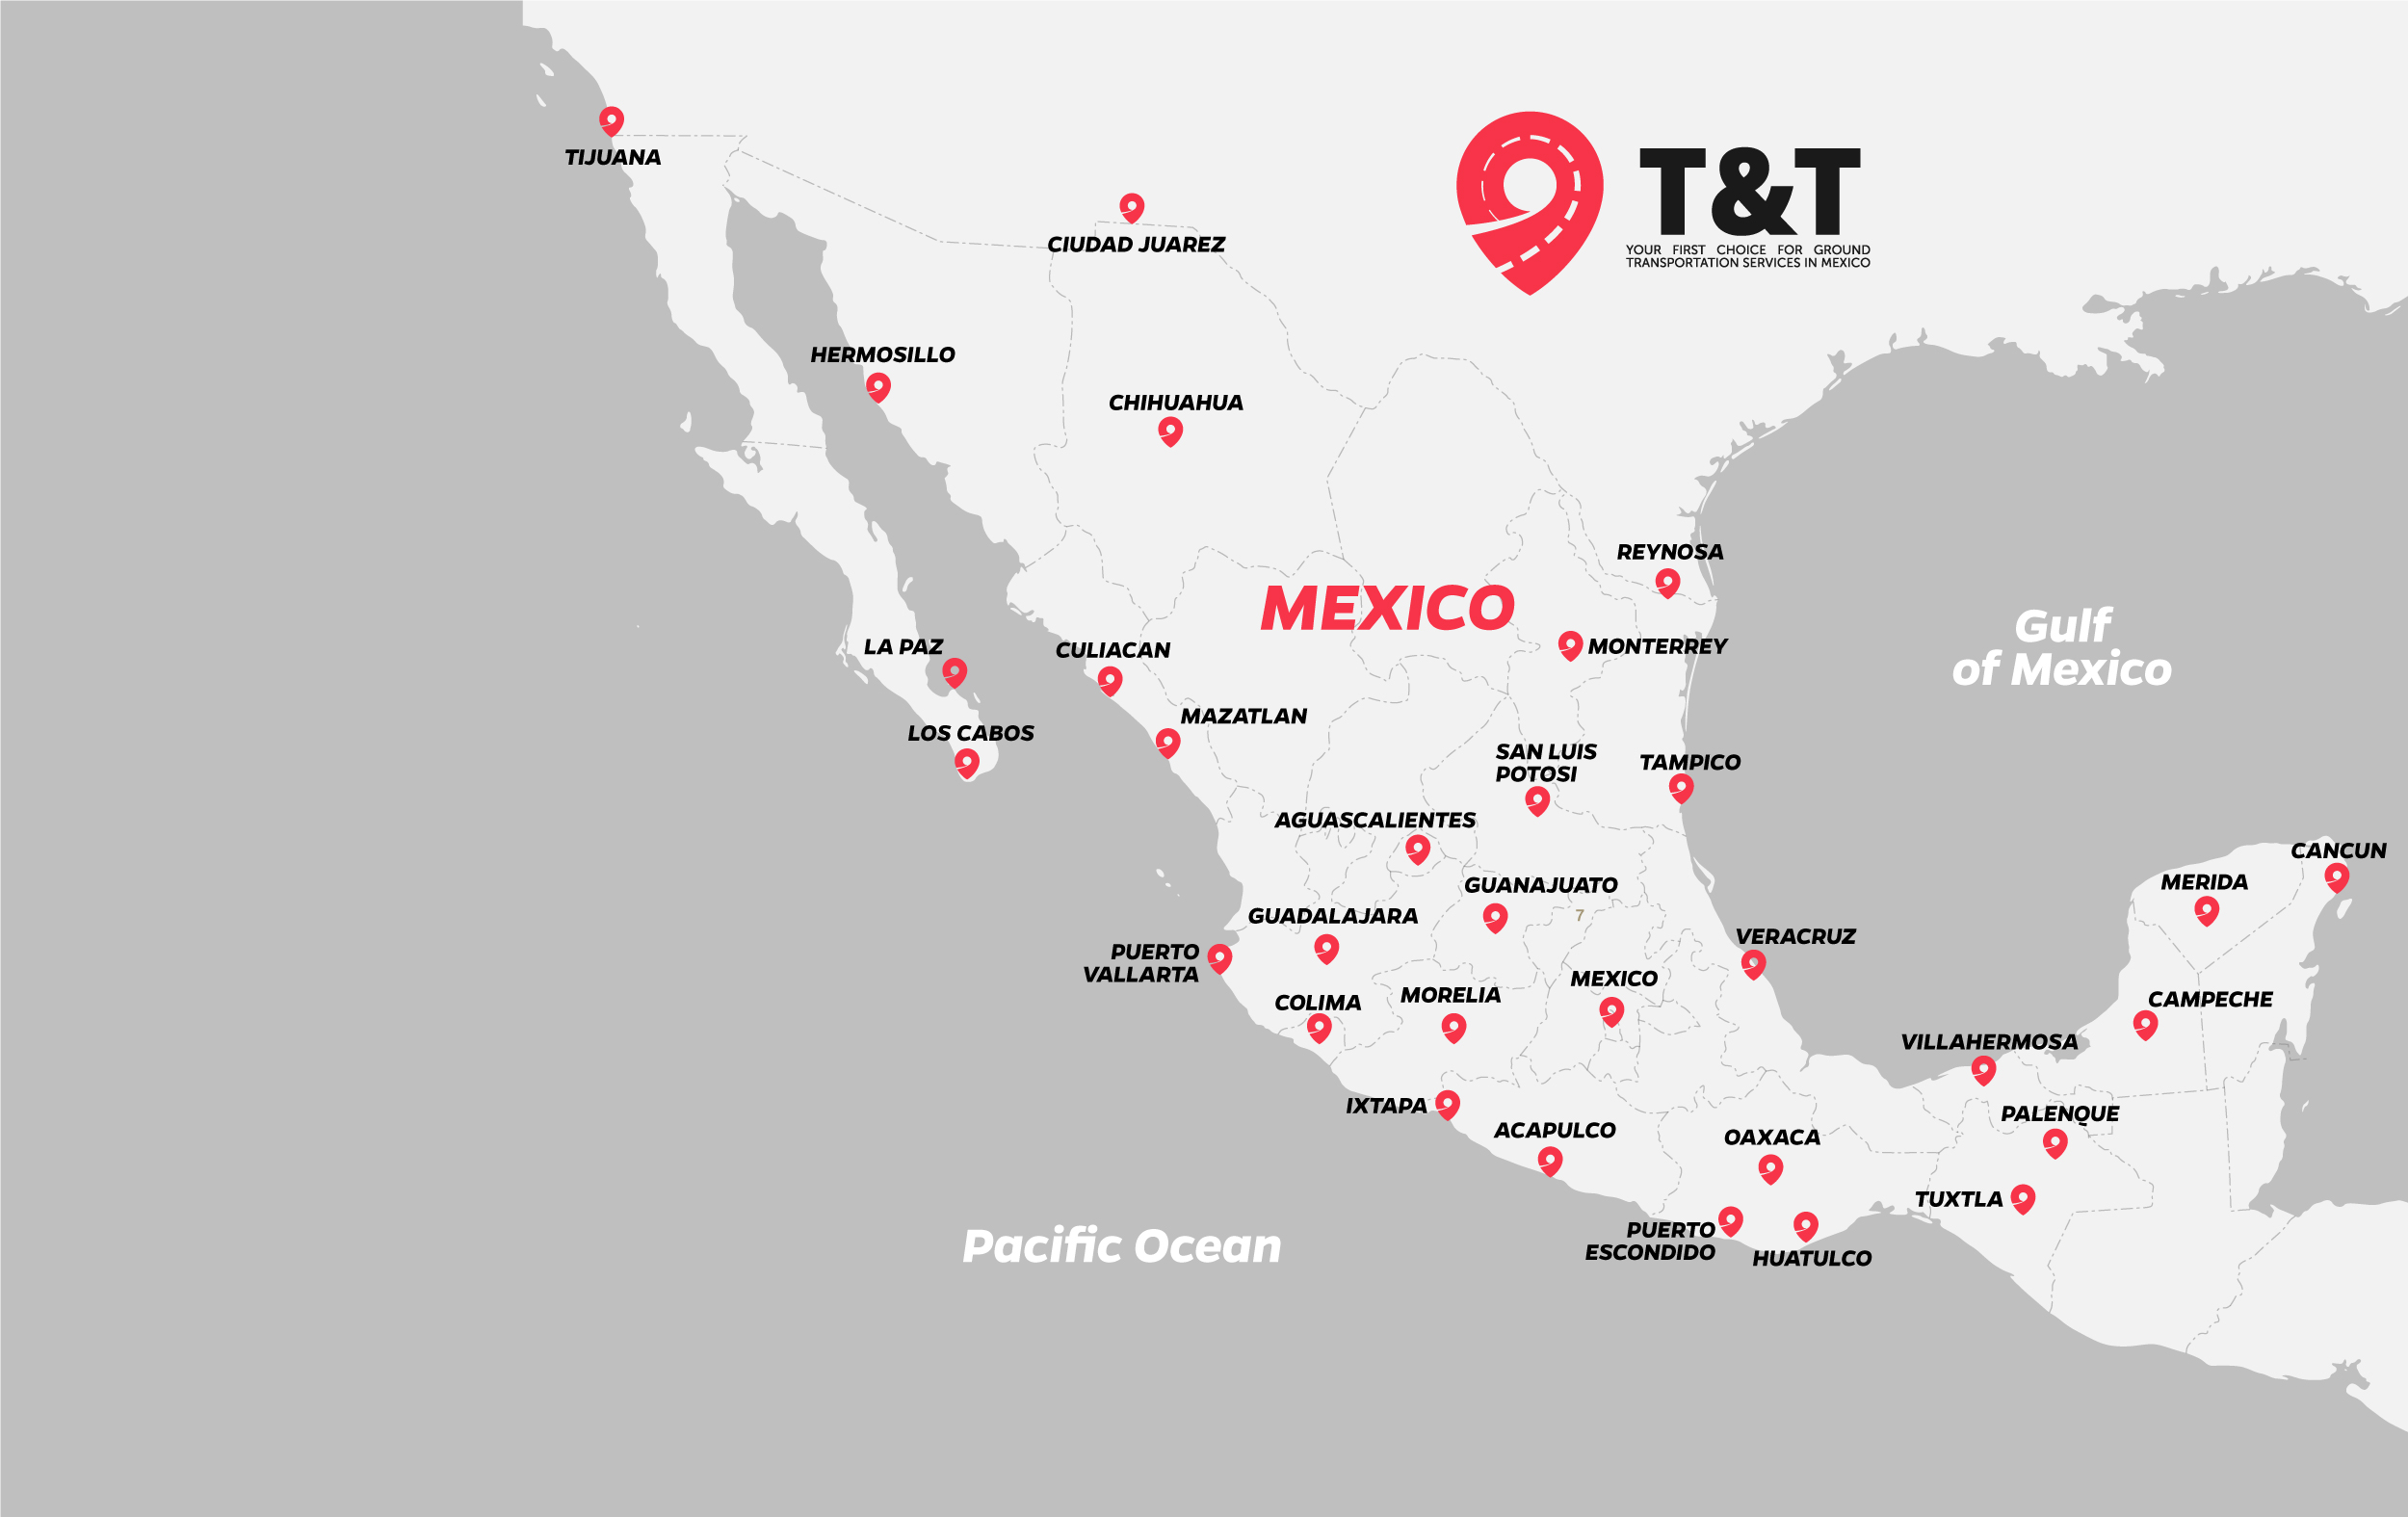 Map Transport hubs in Mexico T&T